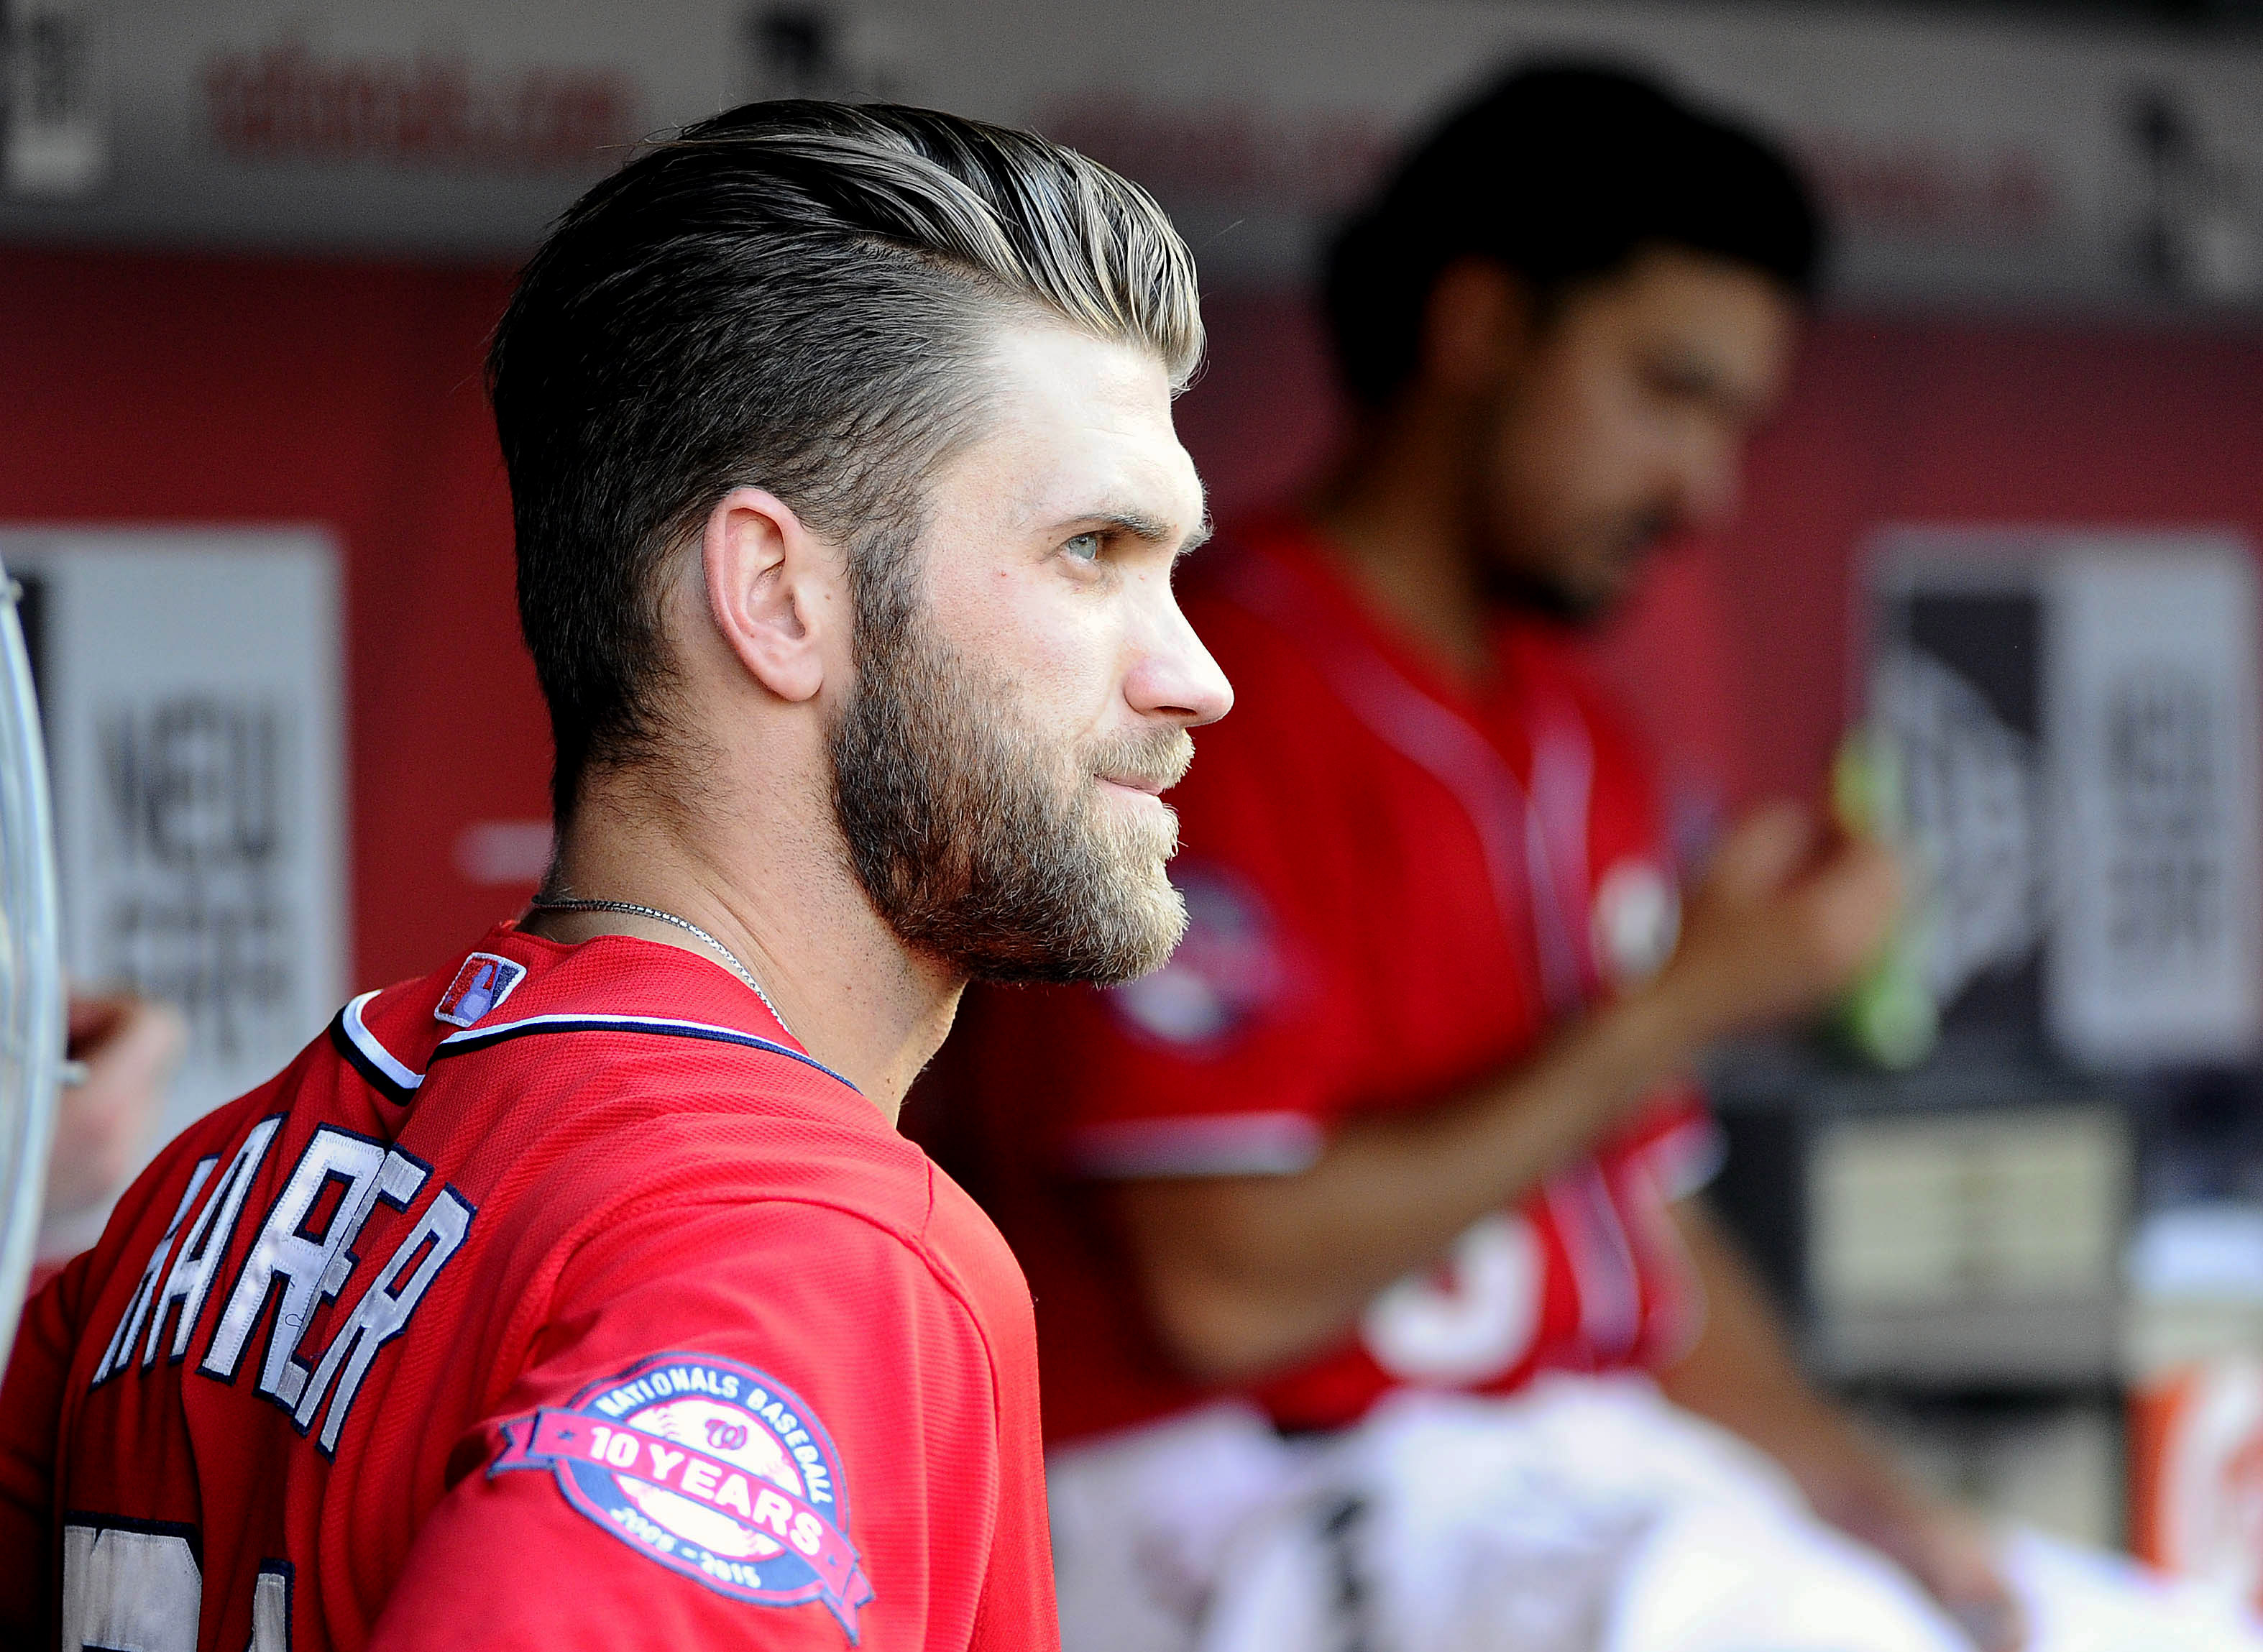 Bryce Harper's insistence that he should attempt the occasional bunt is one of the few remaining weaknesses in his game. It cost him count leverage in a big spot Wednesday night.